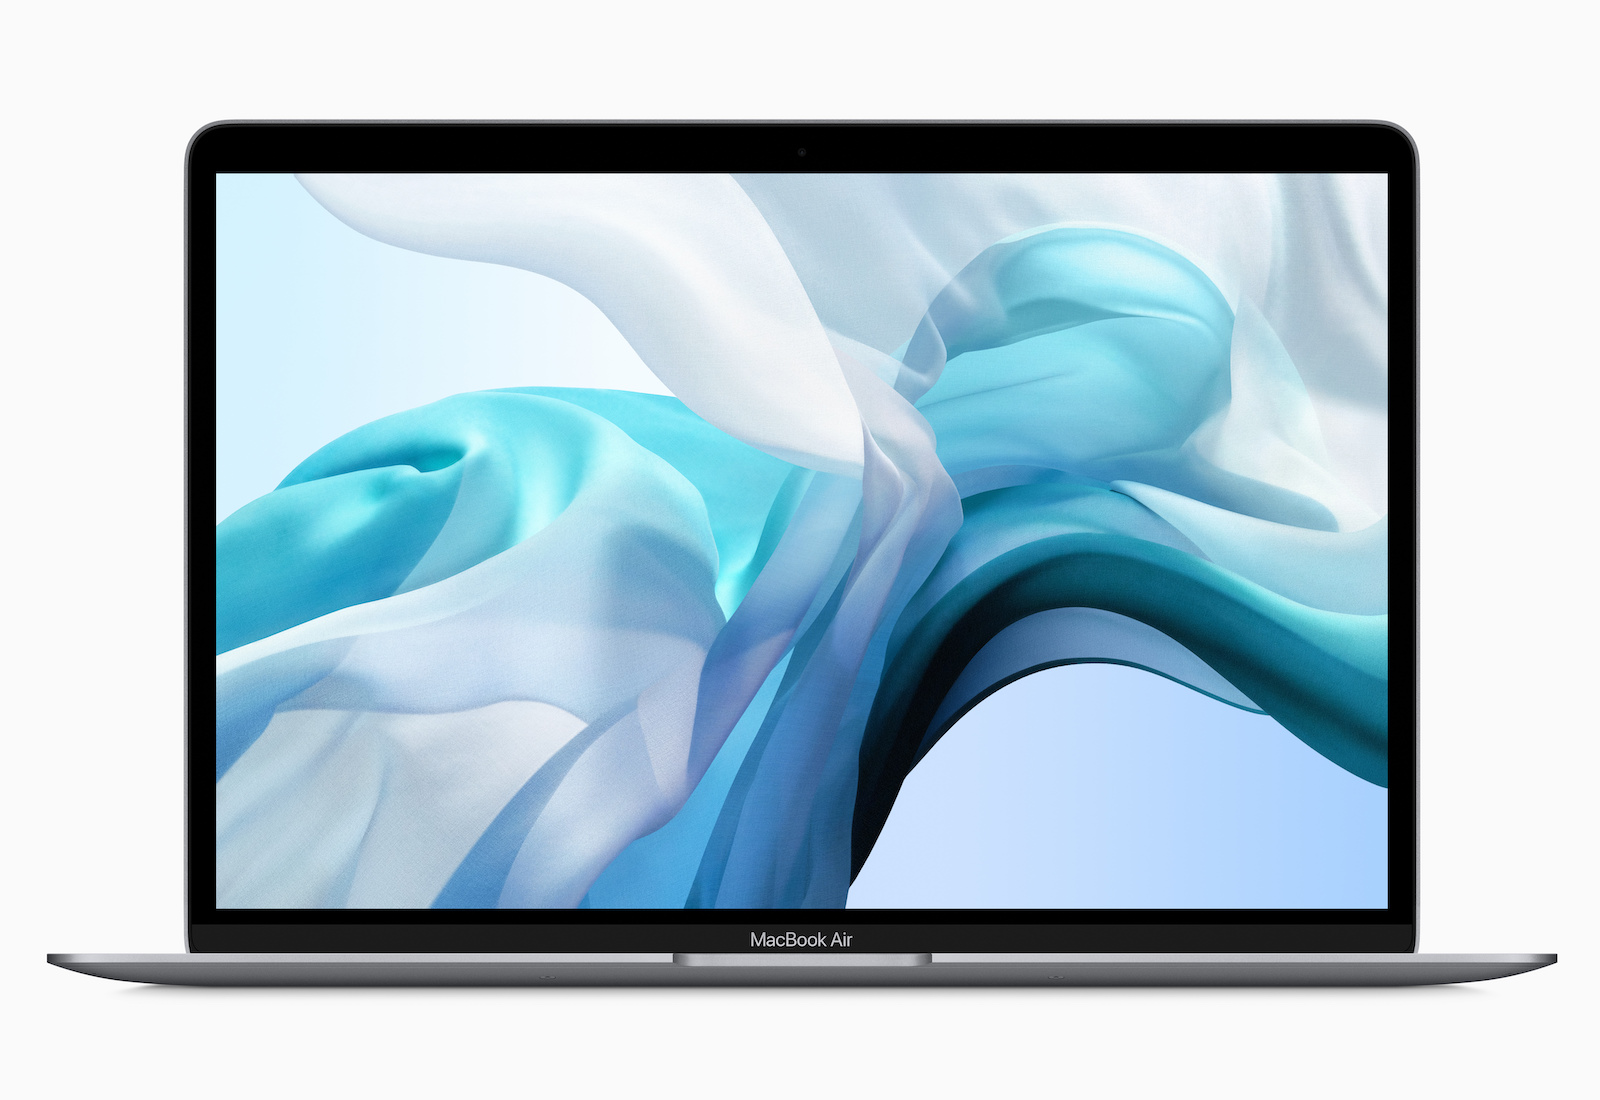 Apple MacBook Air and MacBook Pro update wallpaper screen 070919